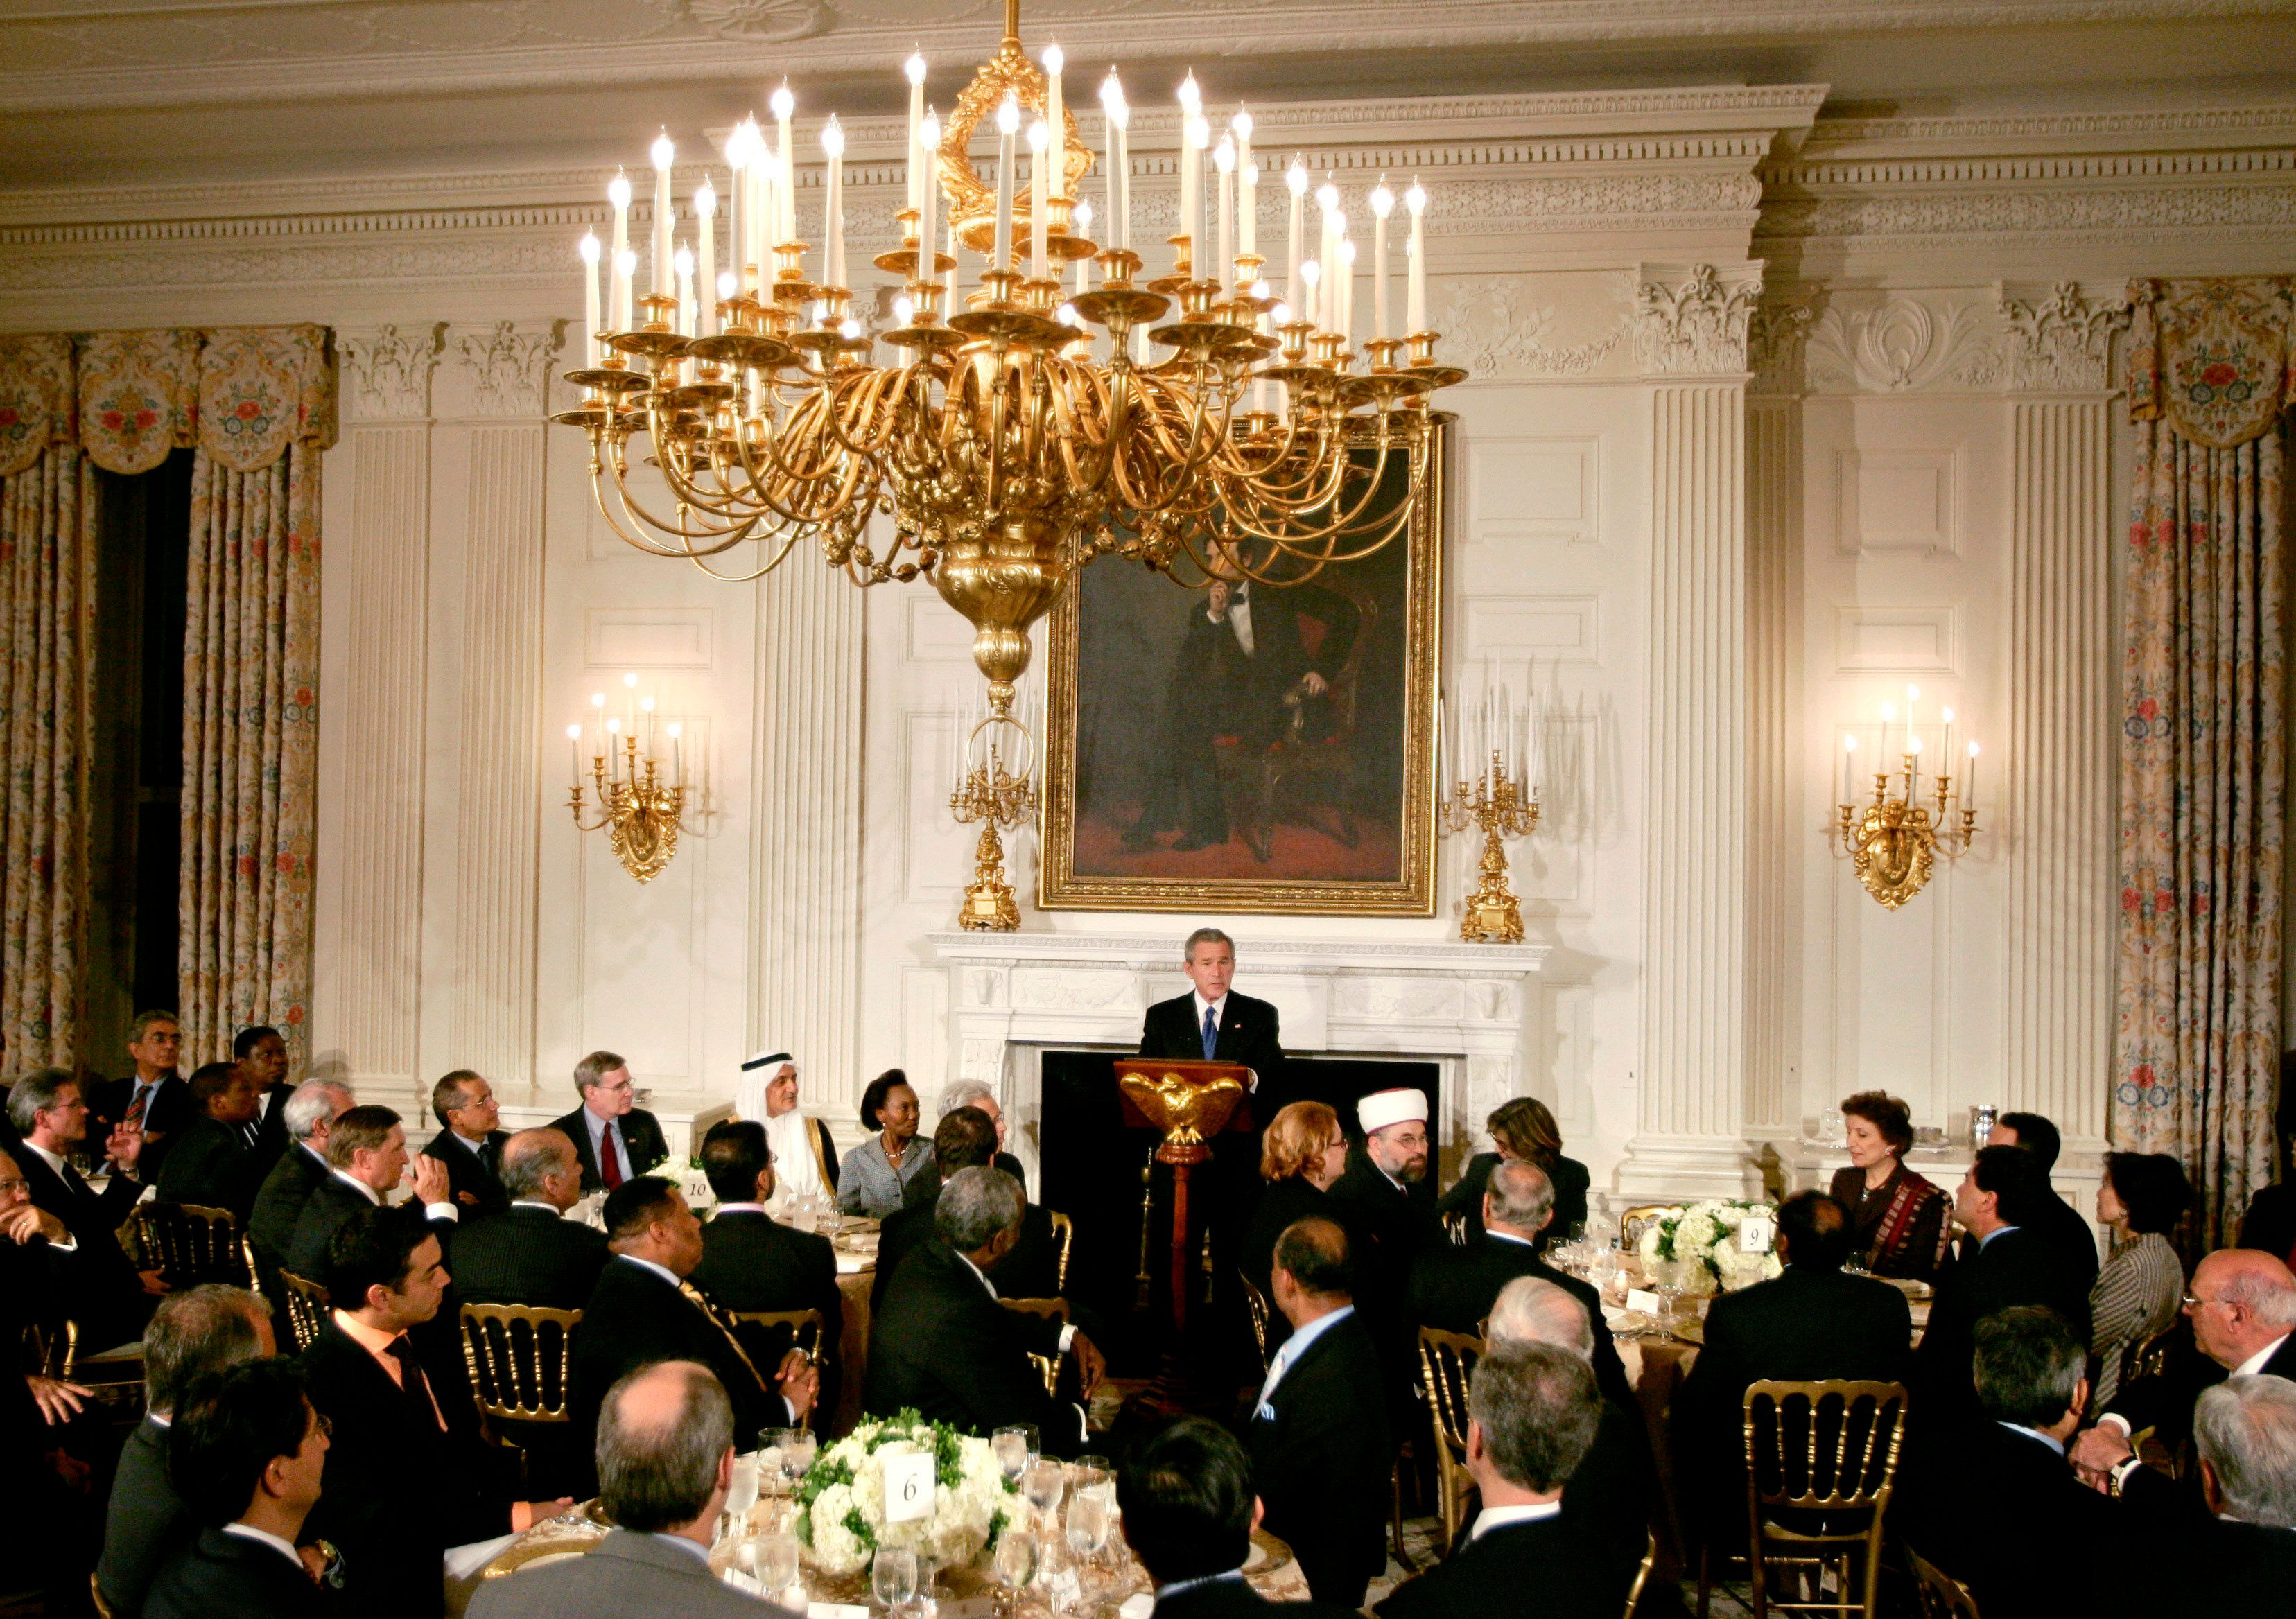 President George W. Bush makes remarks at an iftar dinner with ambassadors and Muslim leaders on Oct. 17, 2005. Iftar is the